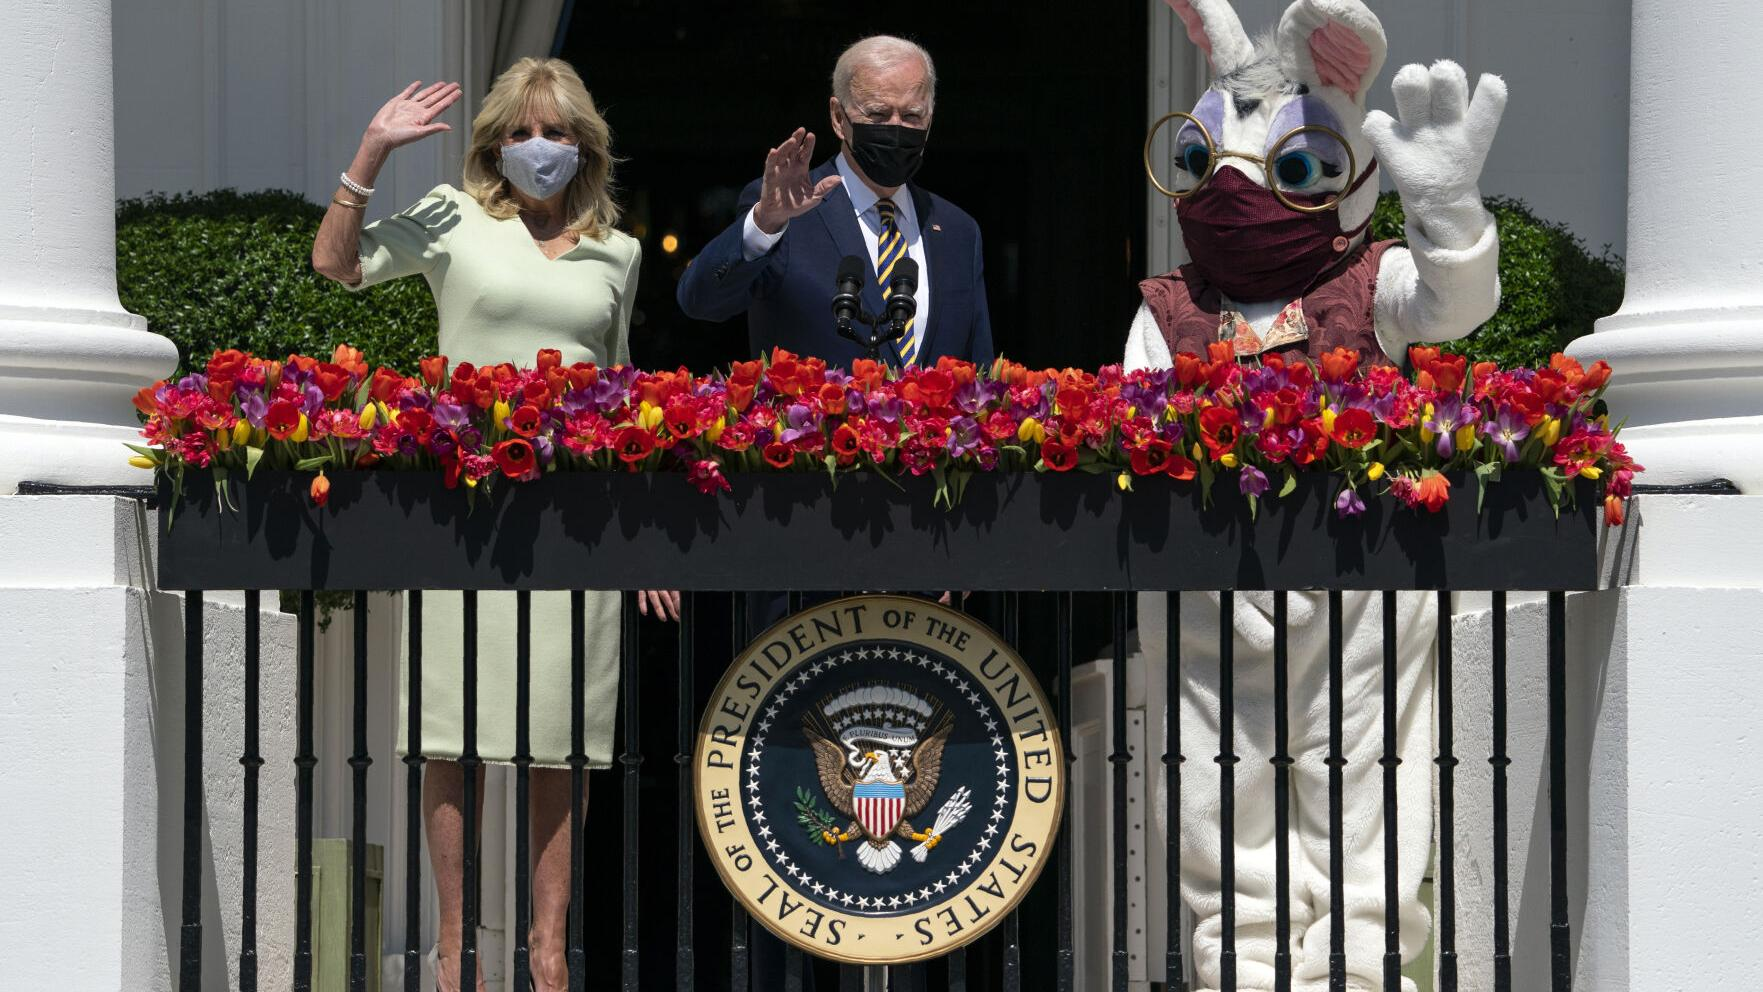 False posts claim Biden suffered Easter health emergency at White House